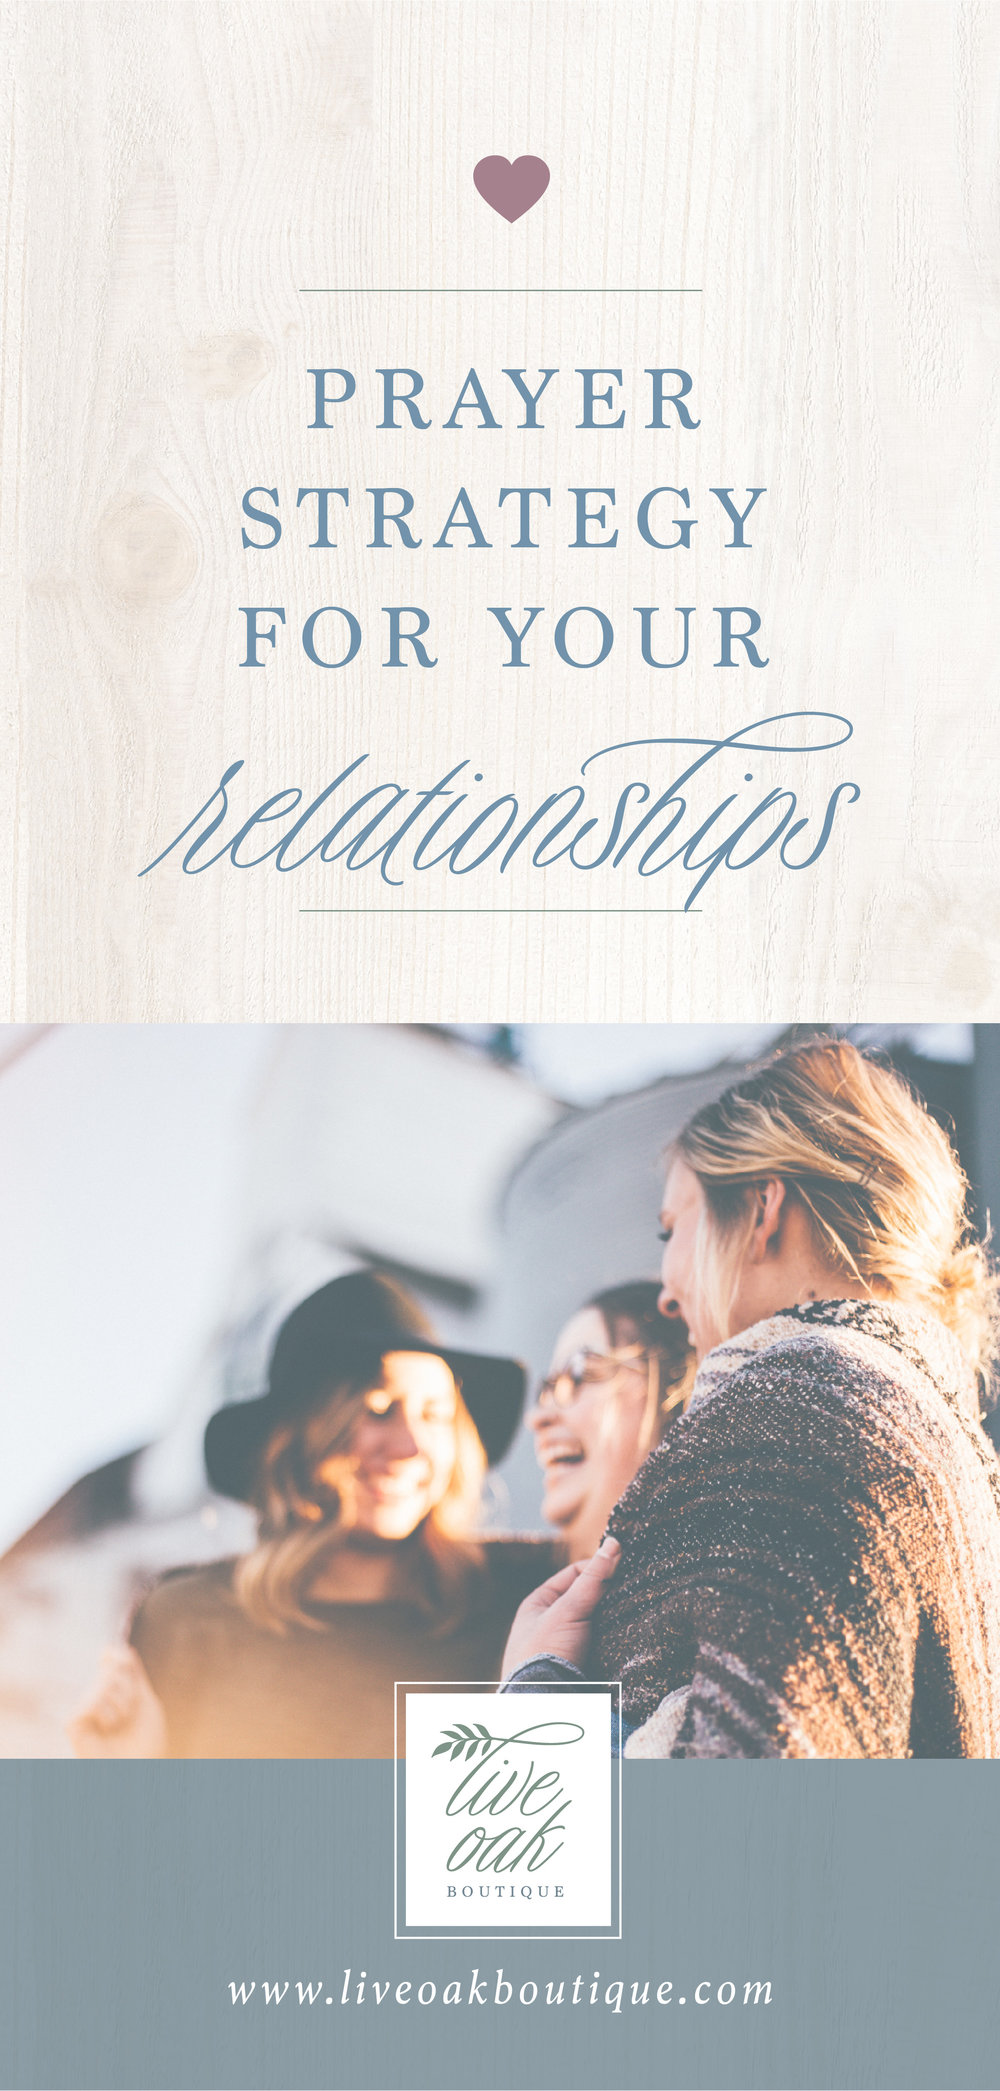 Prayer Strategy for Your Relationships from Live Oak Boutique. www.liveoakboutique.com.